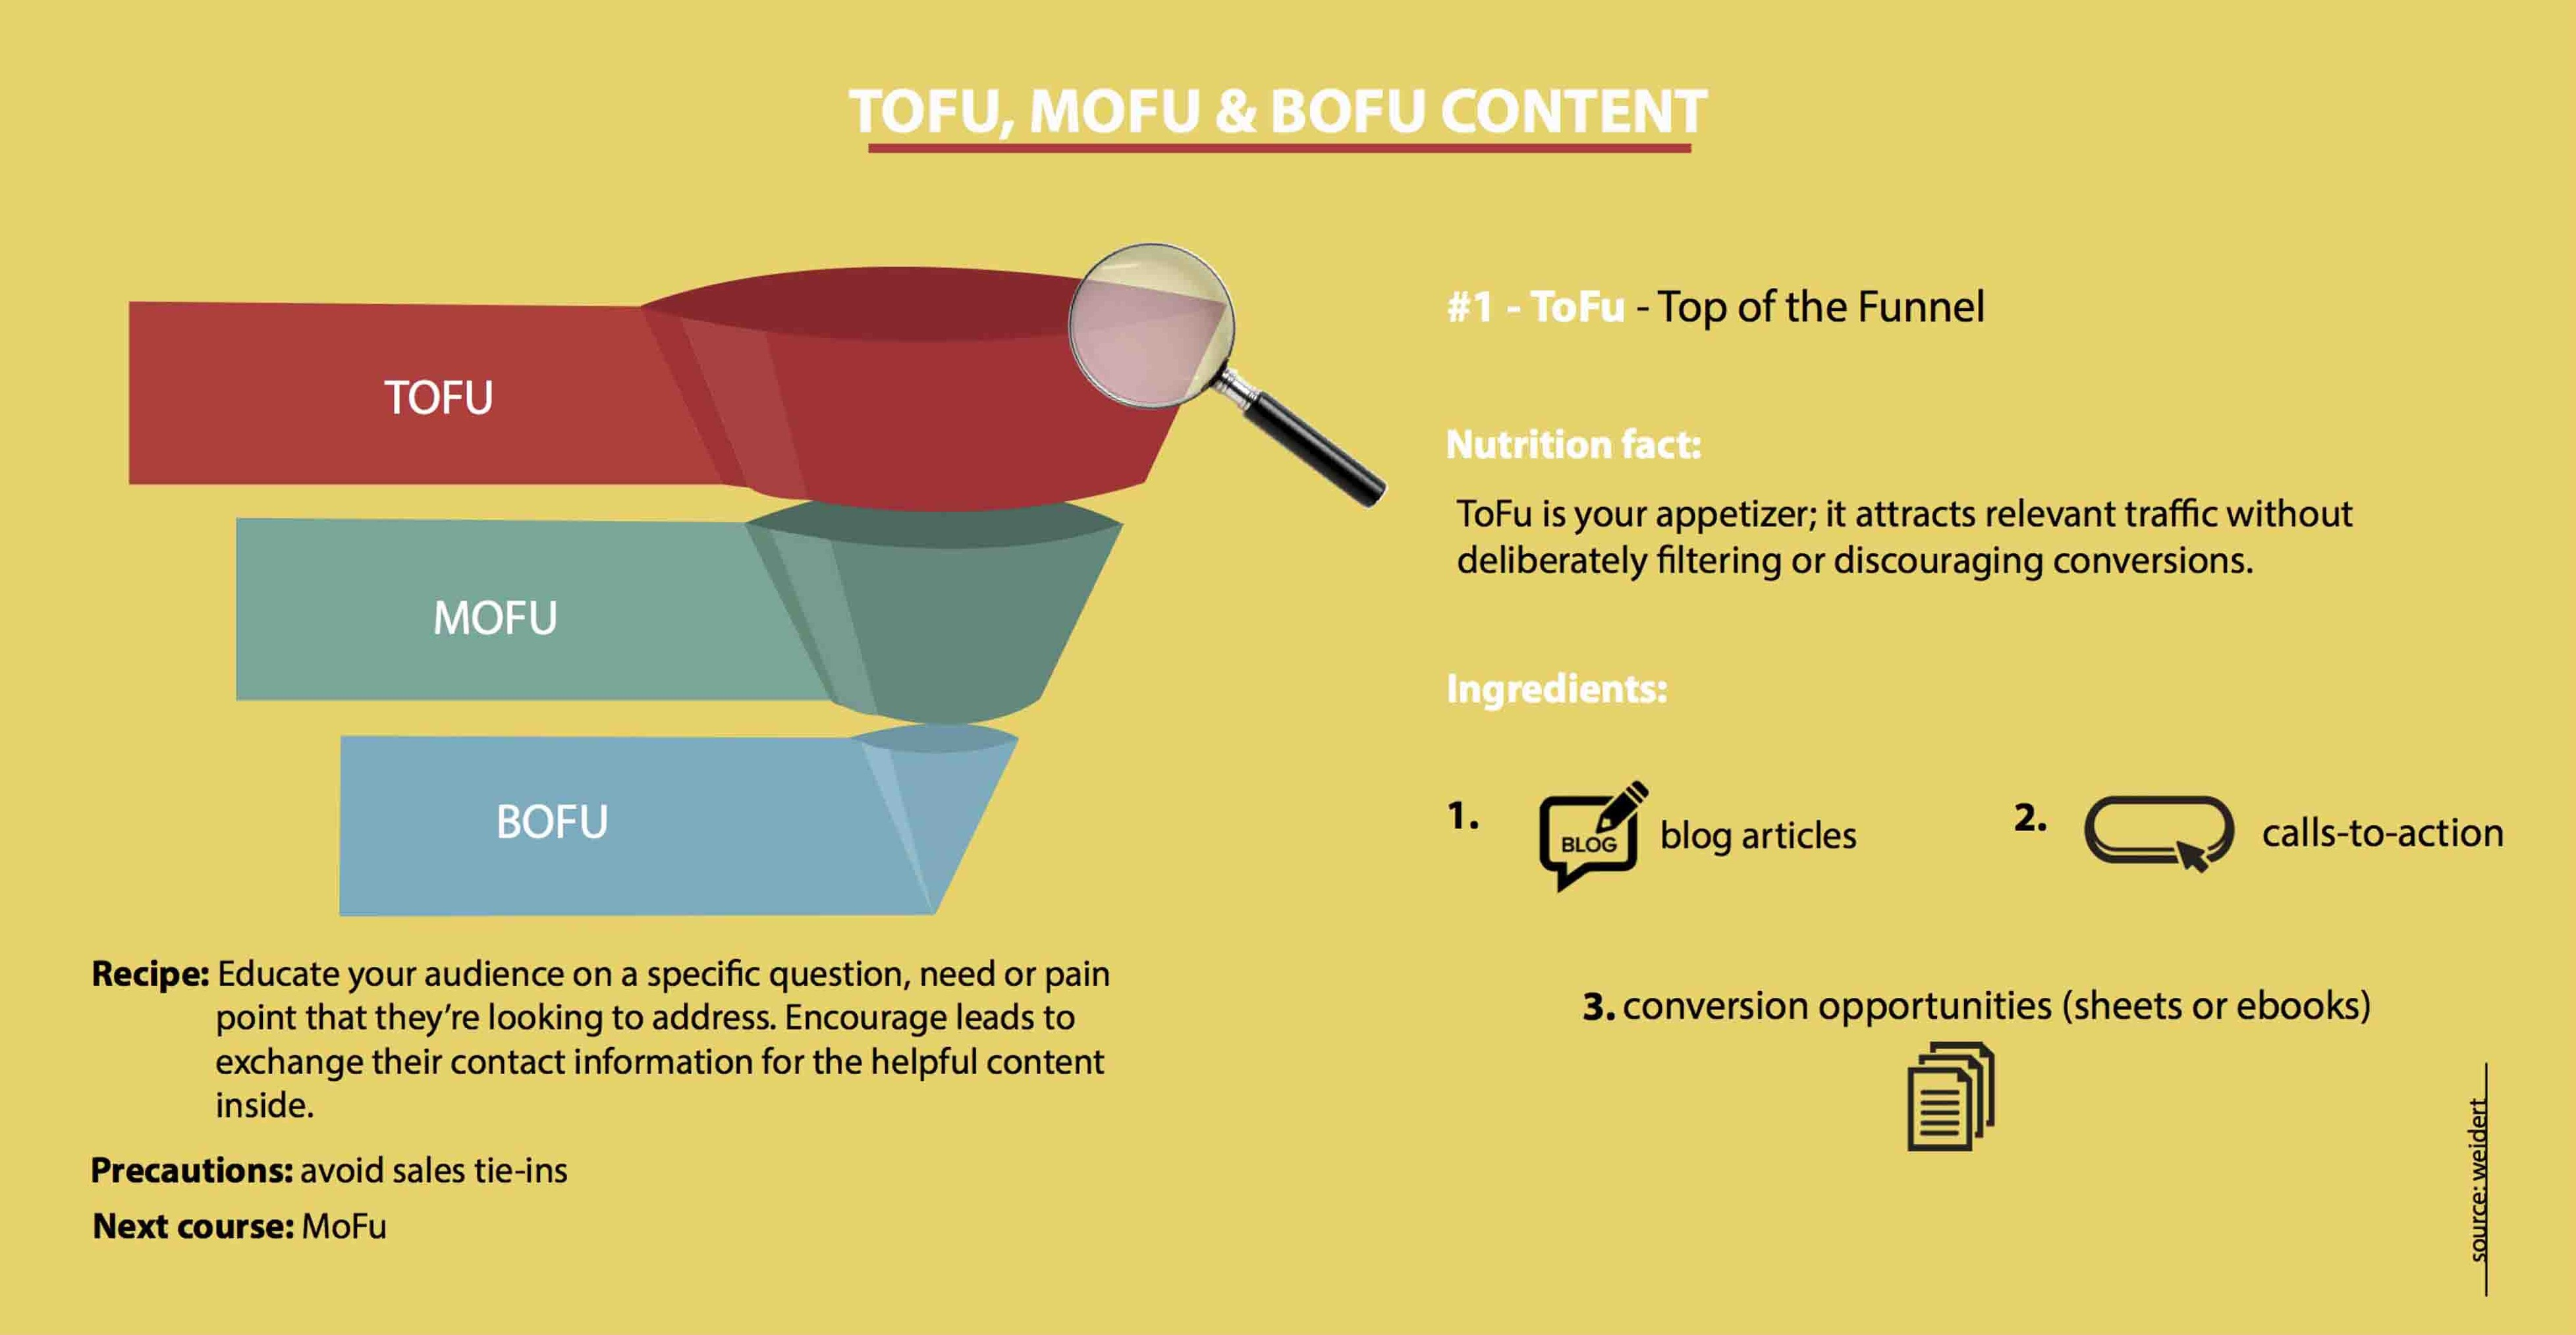 TOFU, MOFU, BOFU Content For Lead Generation